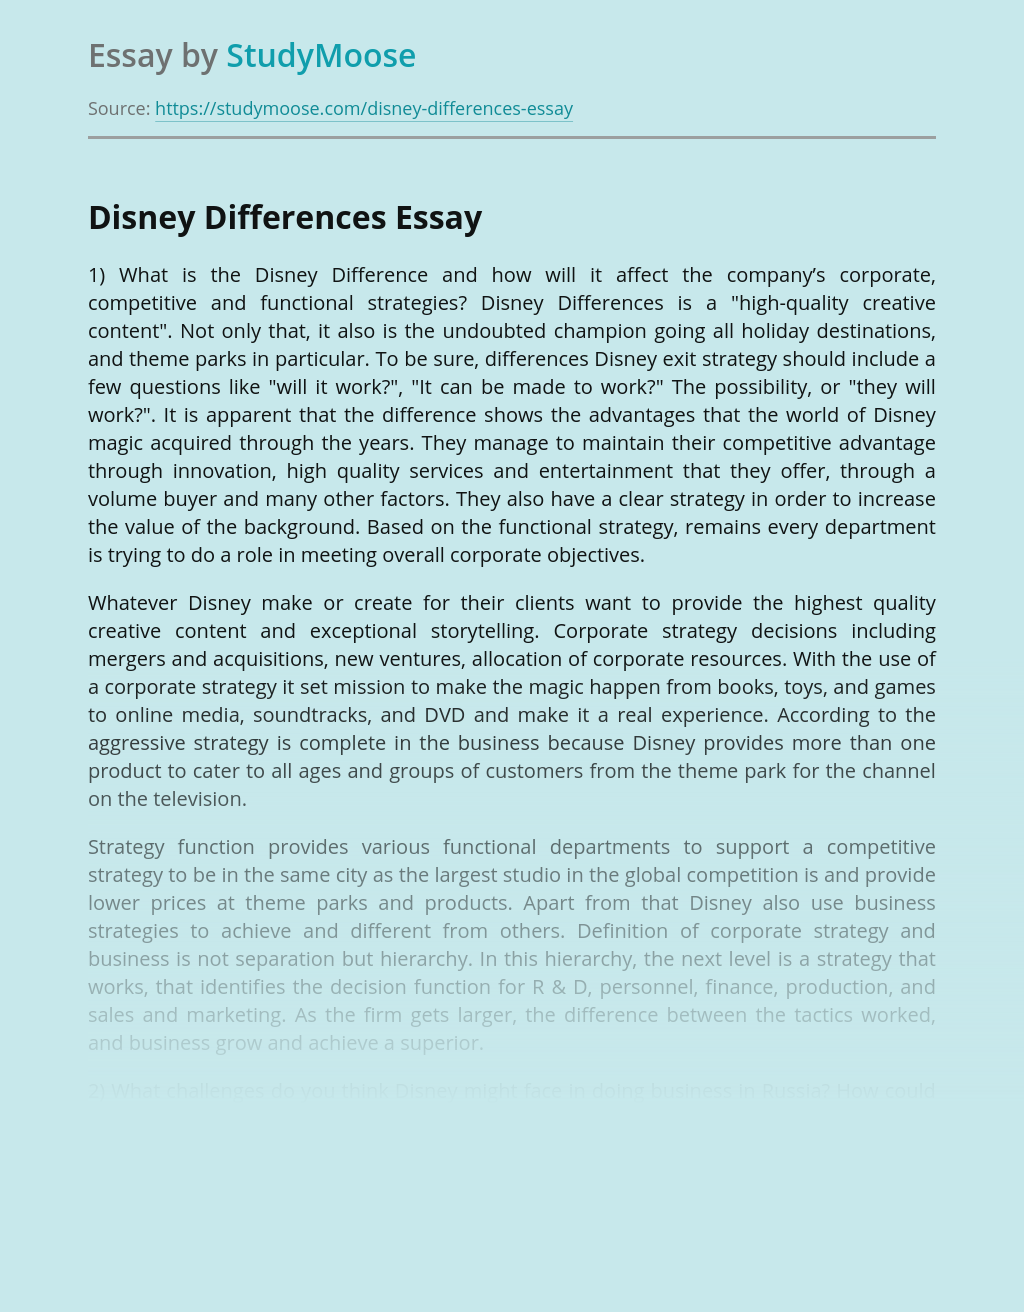 Disney Differences